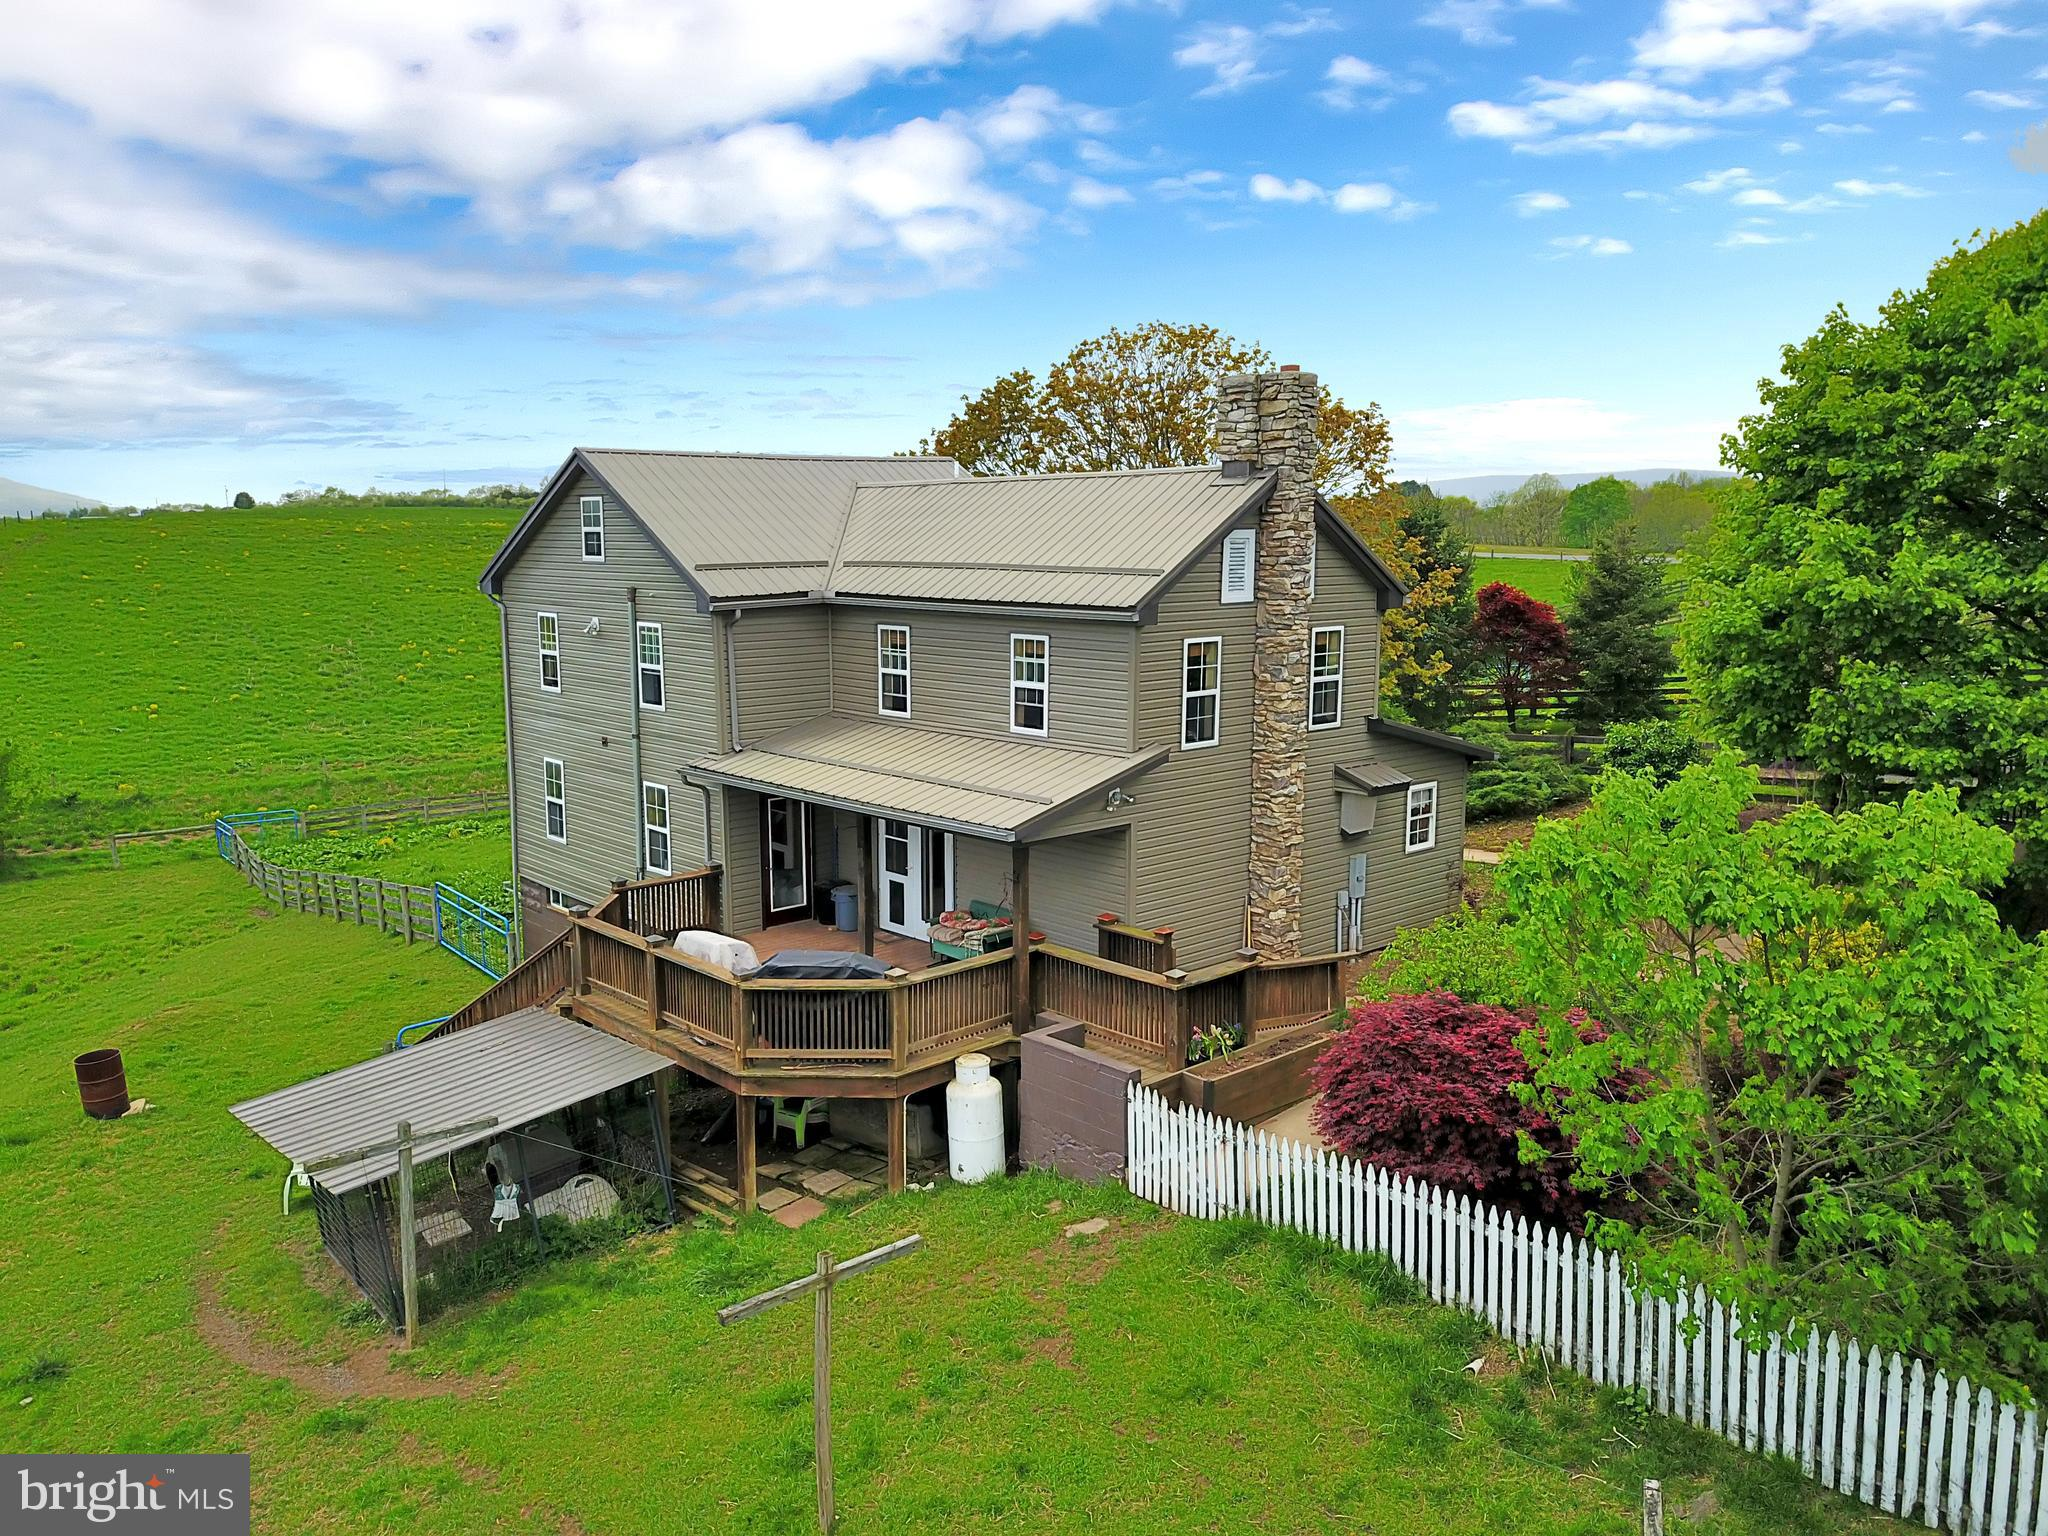 3466 BREEZY POINT ROAD, MC CONNELLSBURG, PA 17233